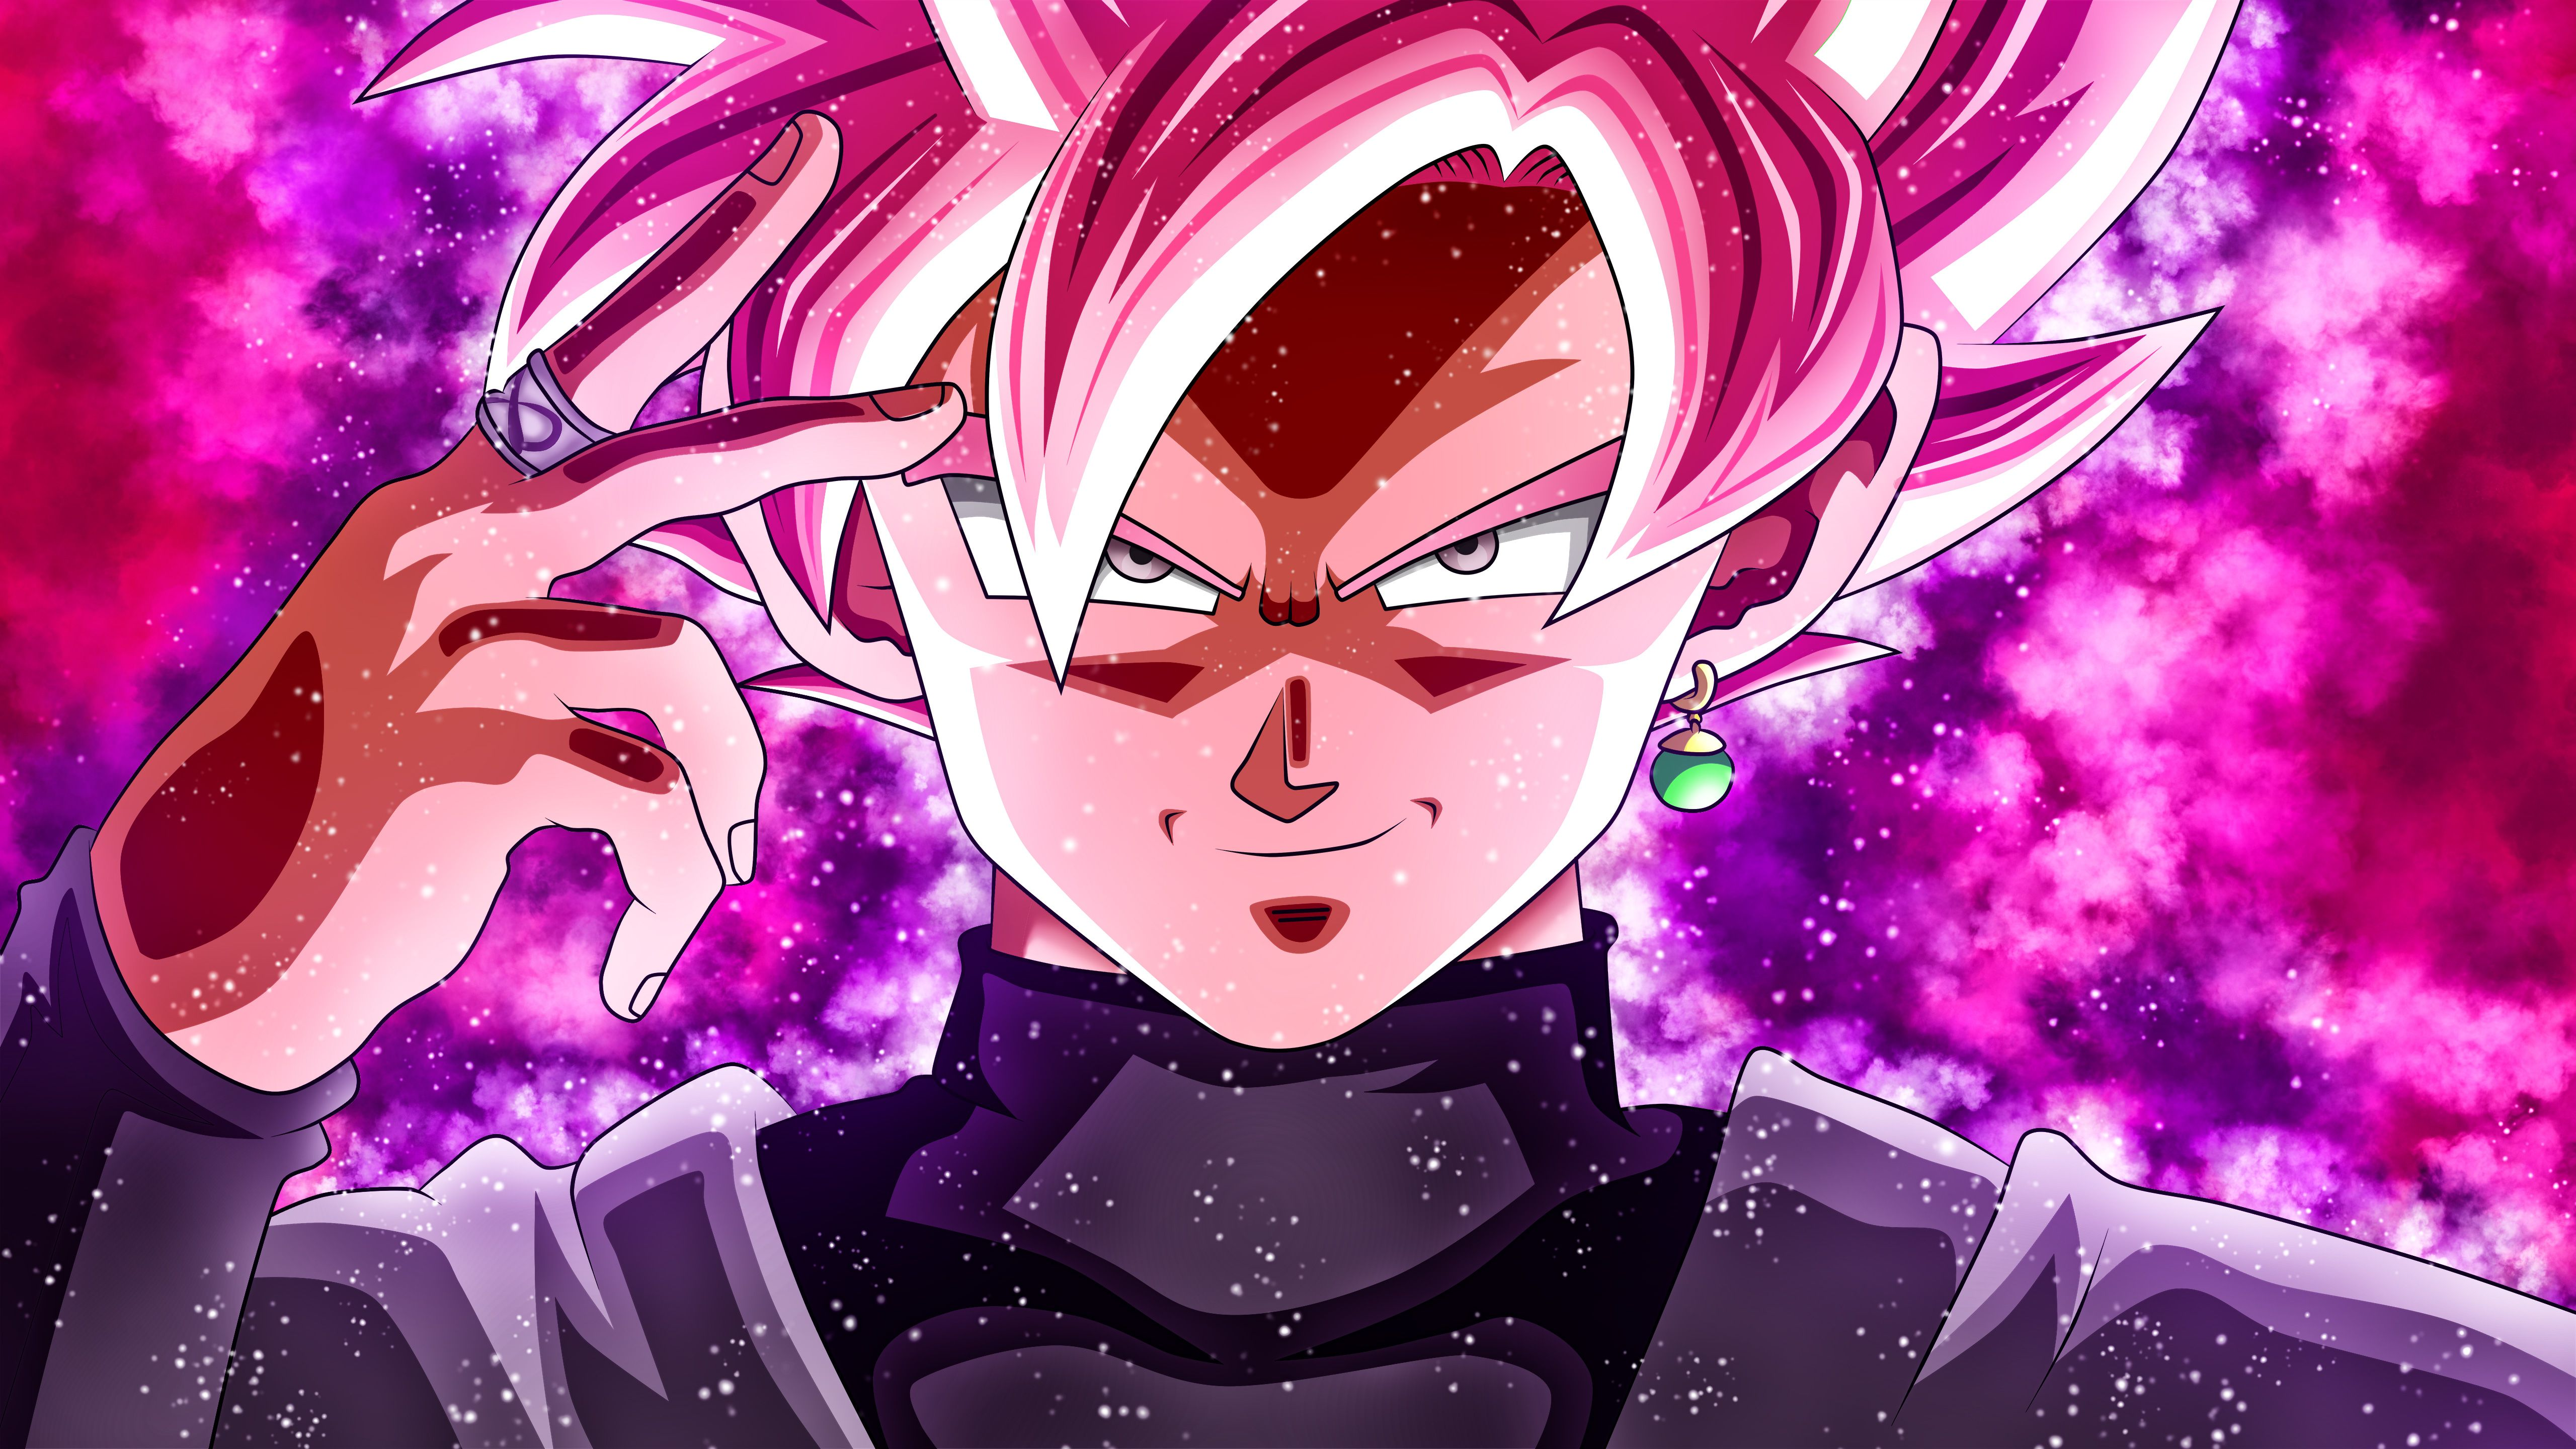 Dbs Manga Goku Black Wallpapers Top Free Dbs Manga Goku Black Backgrounds Wallpaperaccess